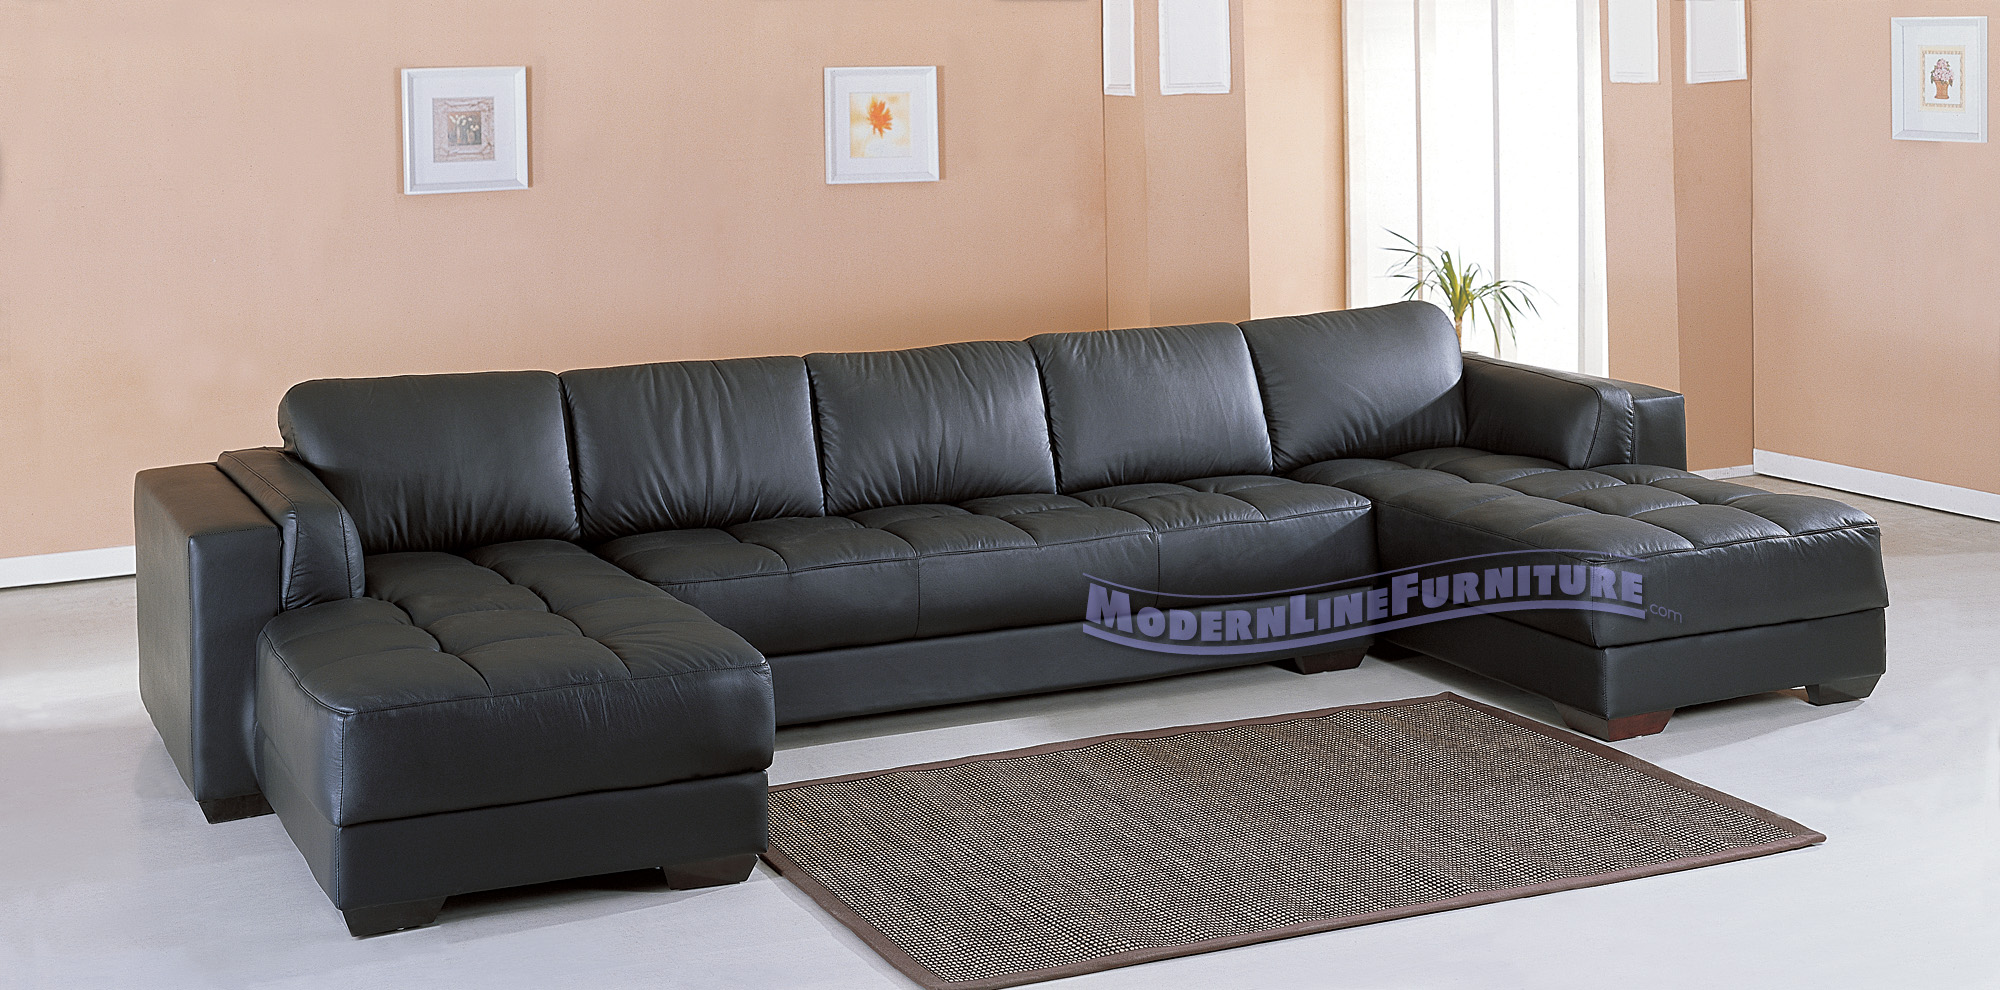 Alluring black leather sectional for elegant living room design with black leather sectional sofa